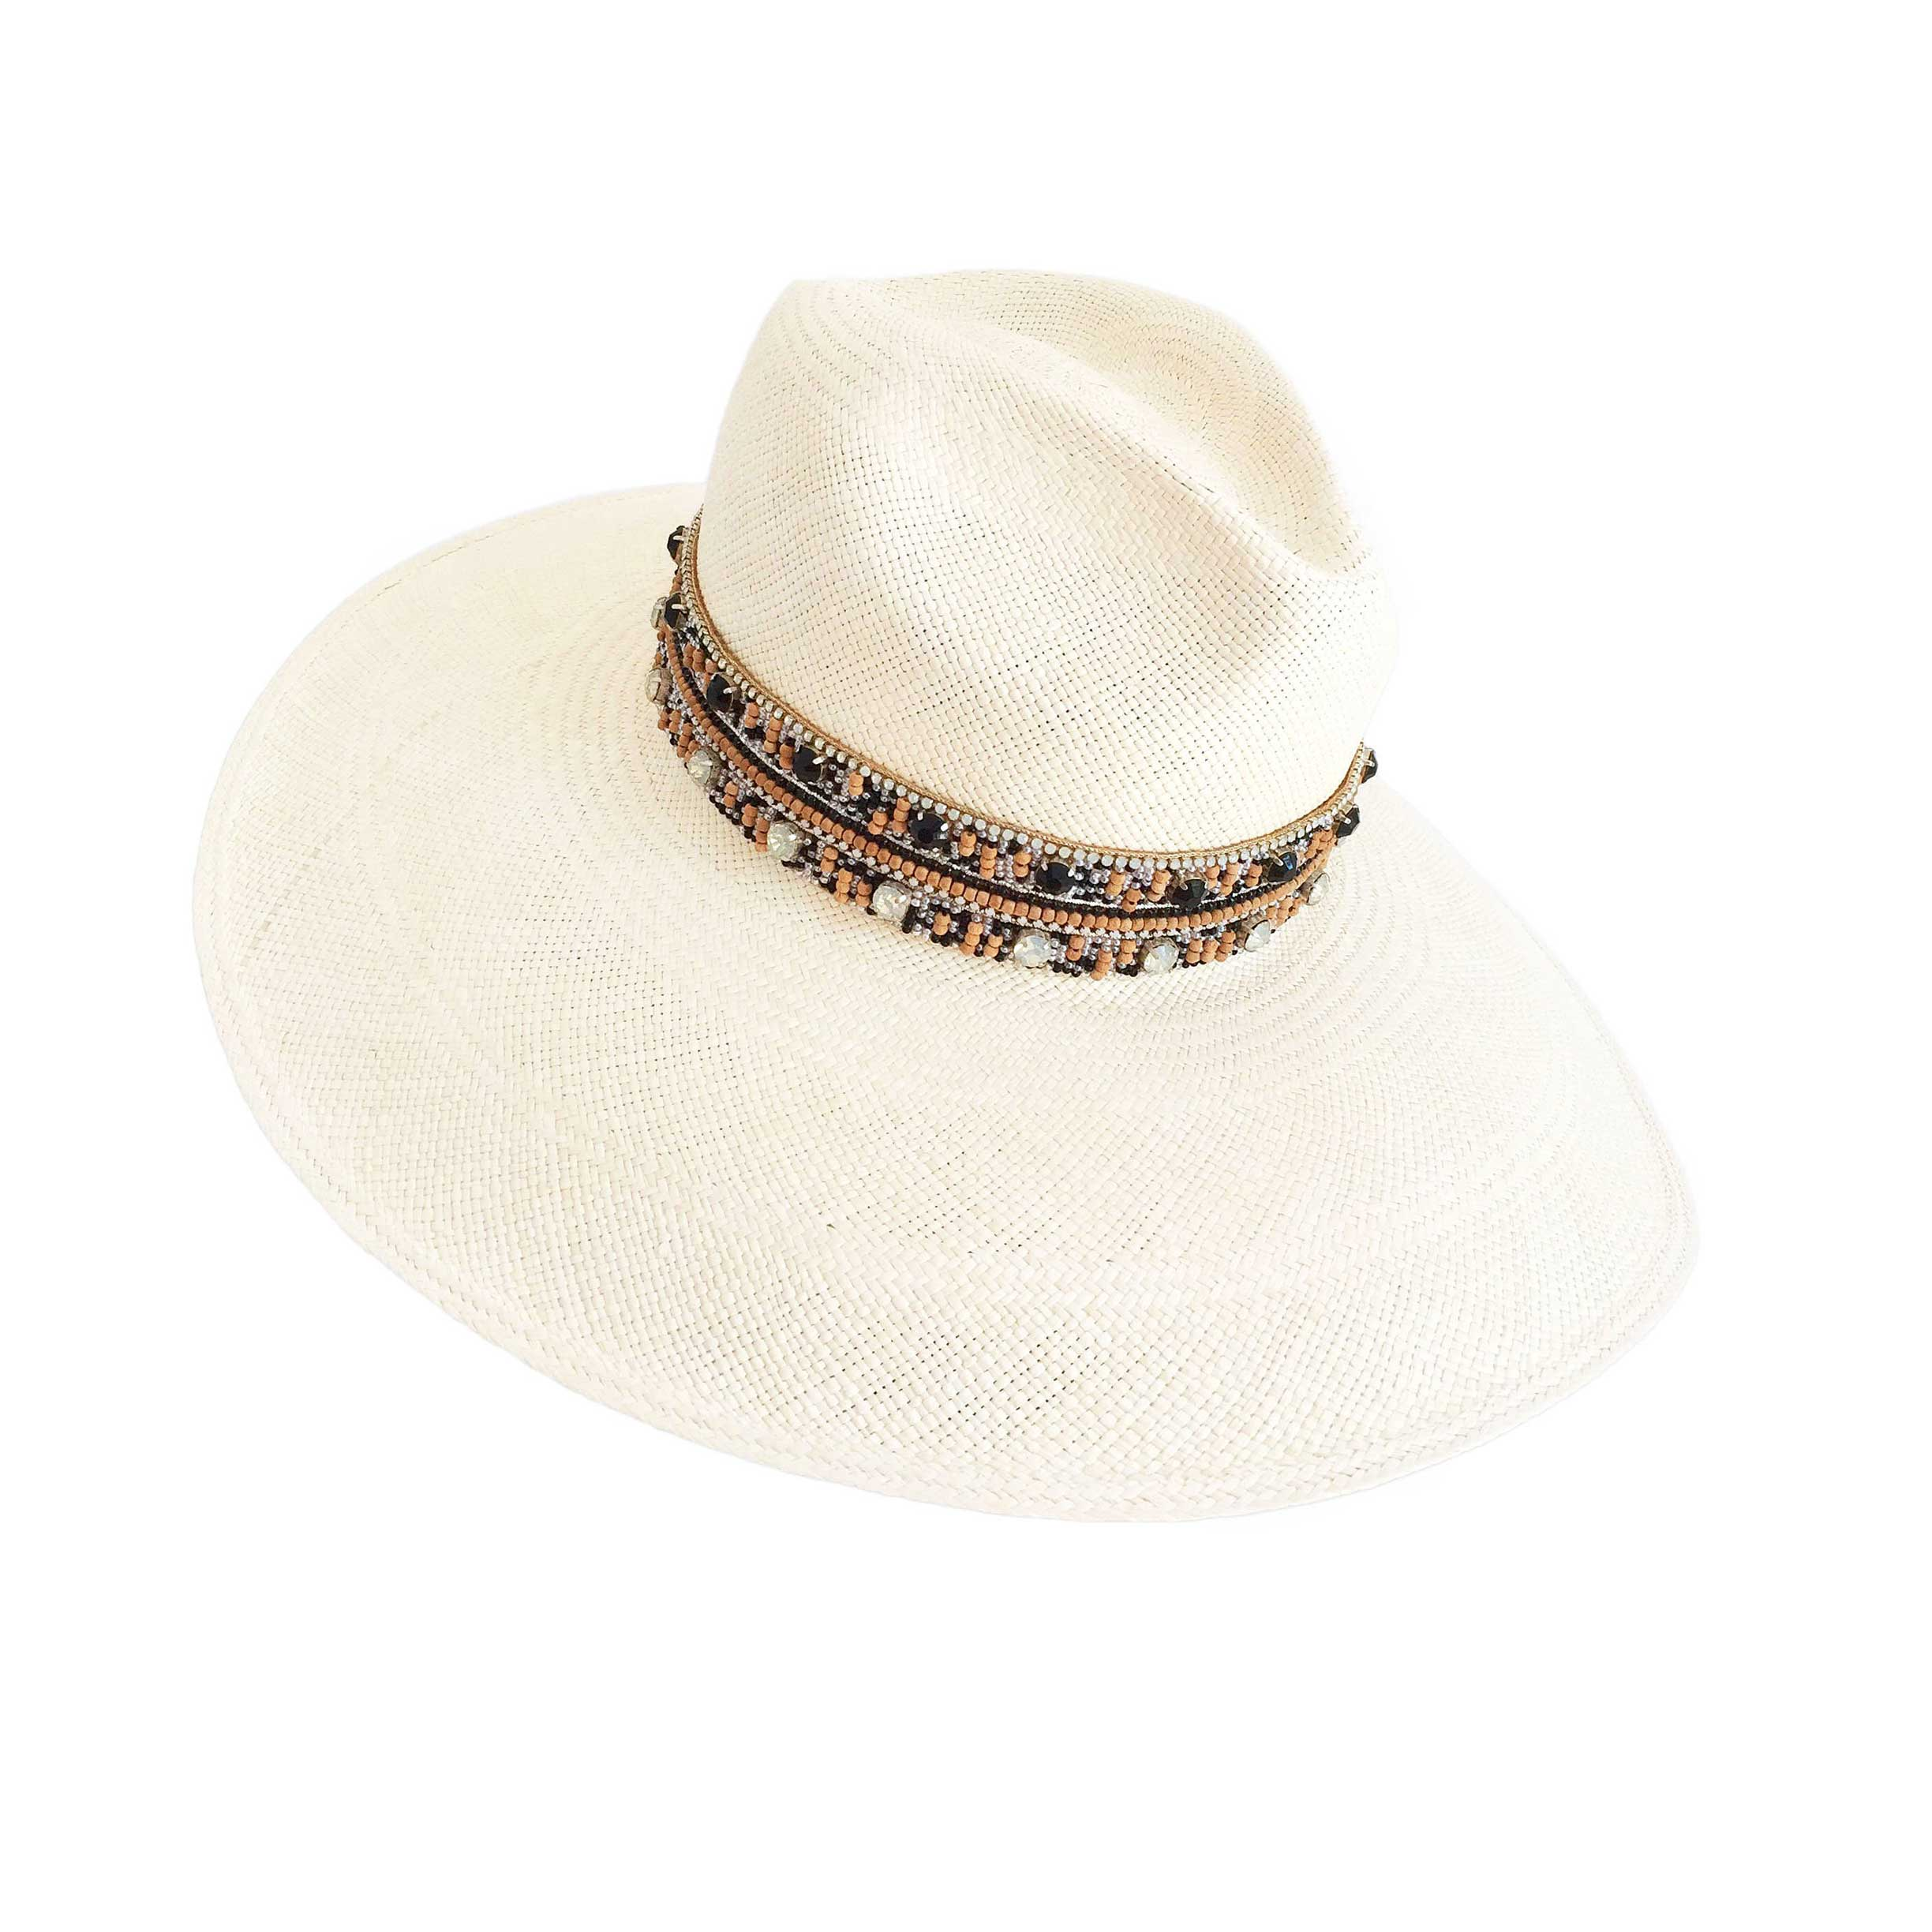 The Paros Black Crystal Panama Hat